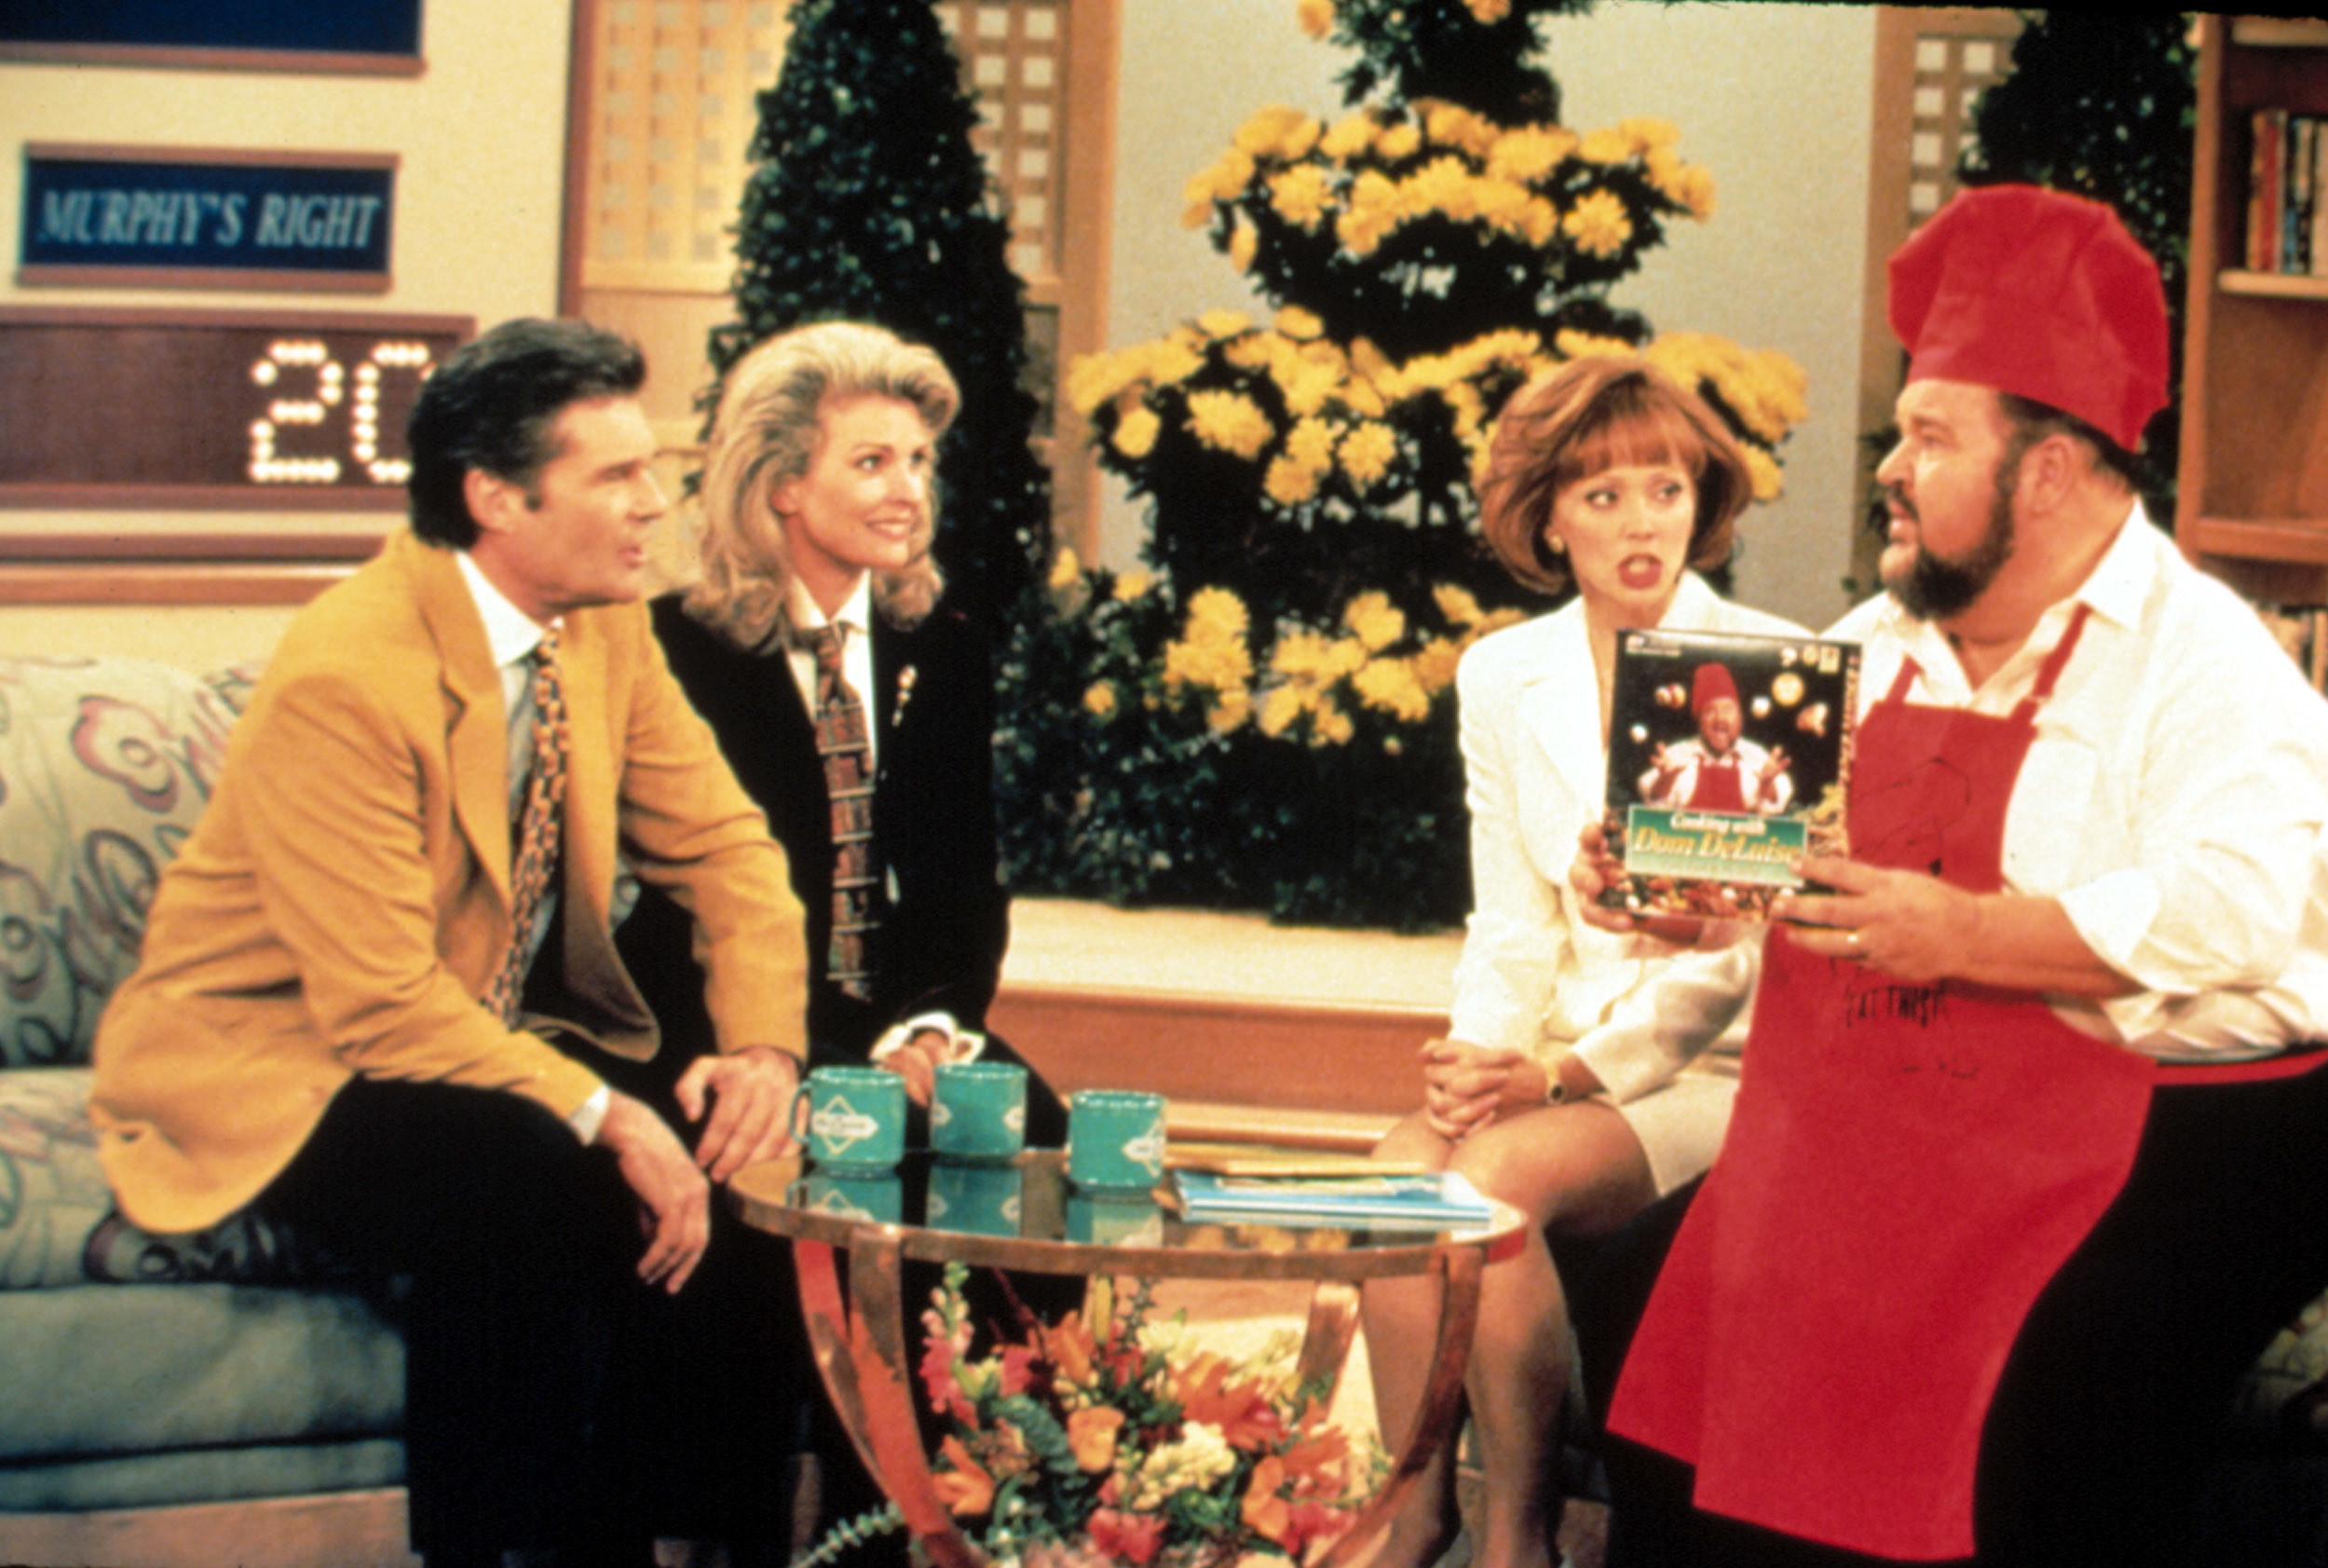 Fred Willard and Candice Bergen interview Shelley Long and Dom DeLuise on a talk show